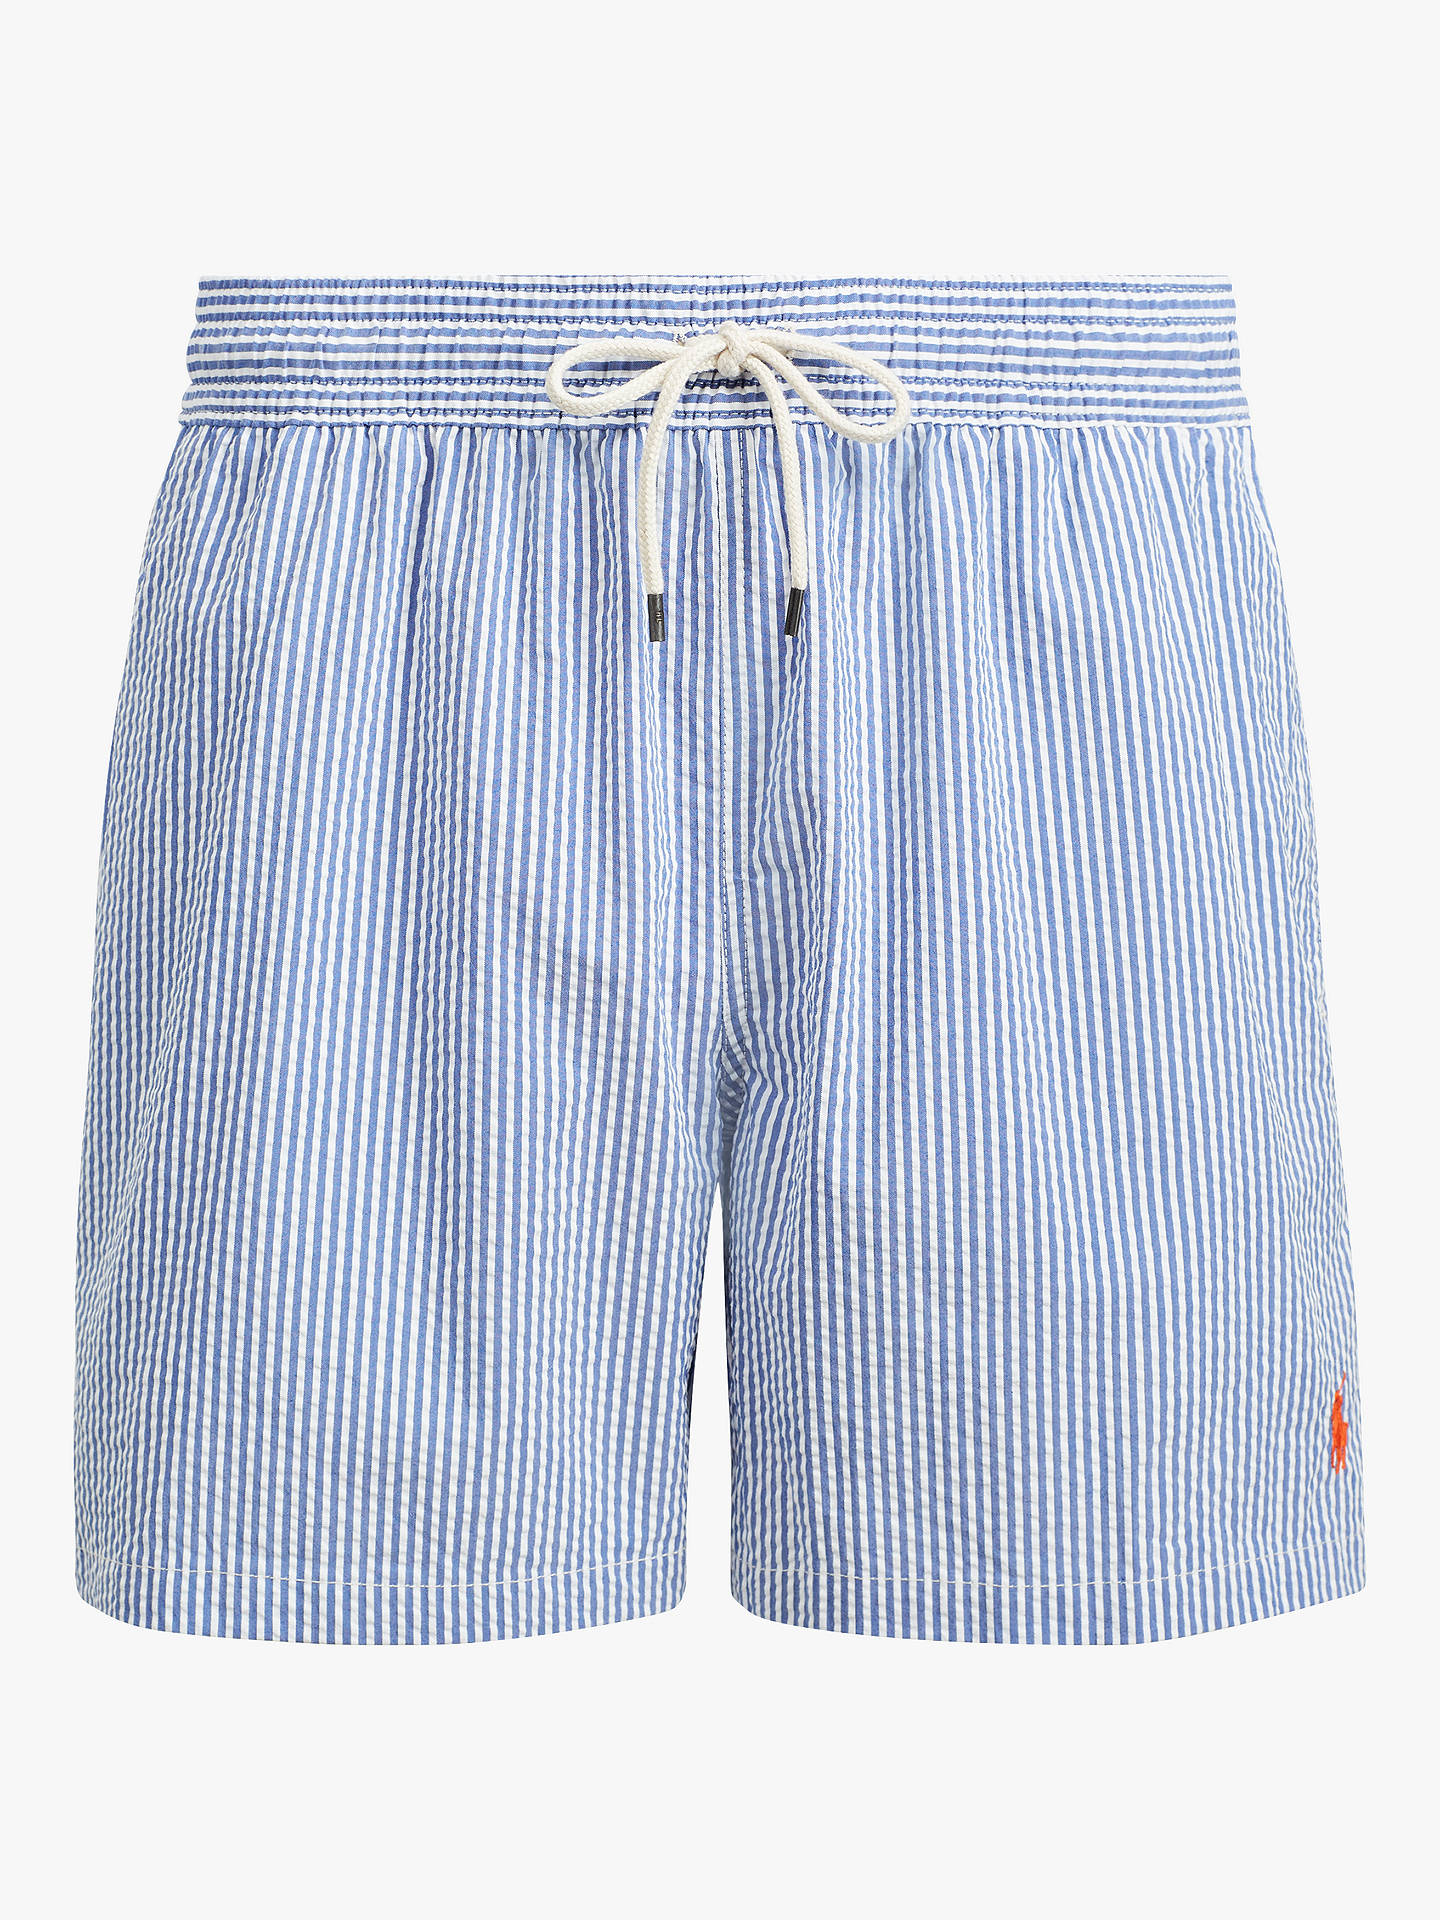 c3ad595b16 Buy Polo Ralph Lauren Seersucker Stripe Swim Shorts, Blue, S Online at  johnlewis.